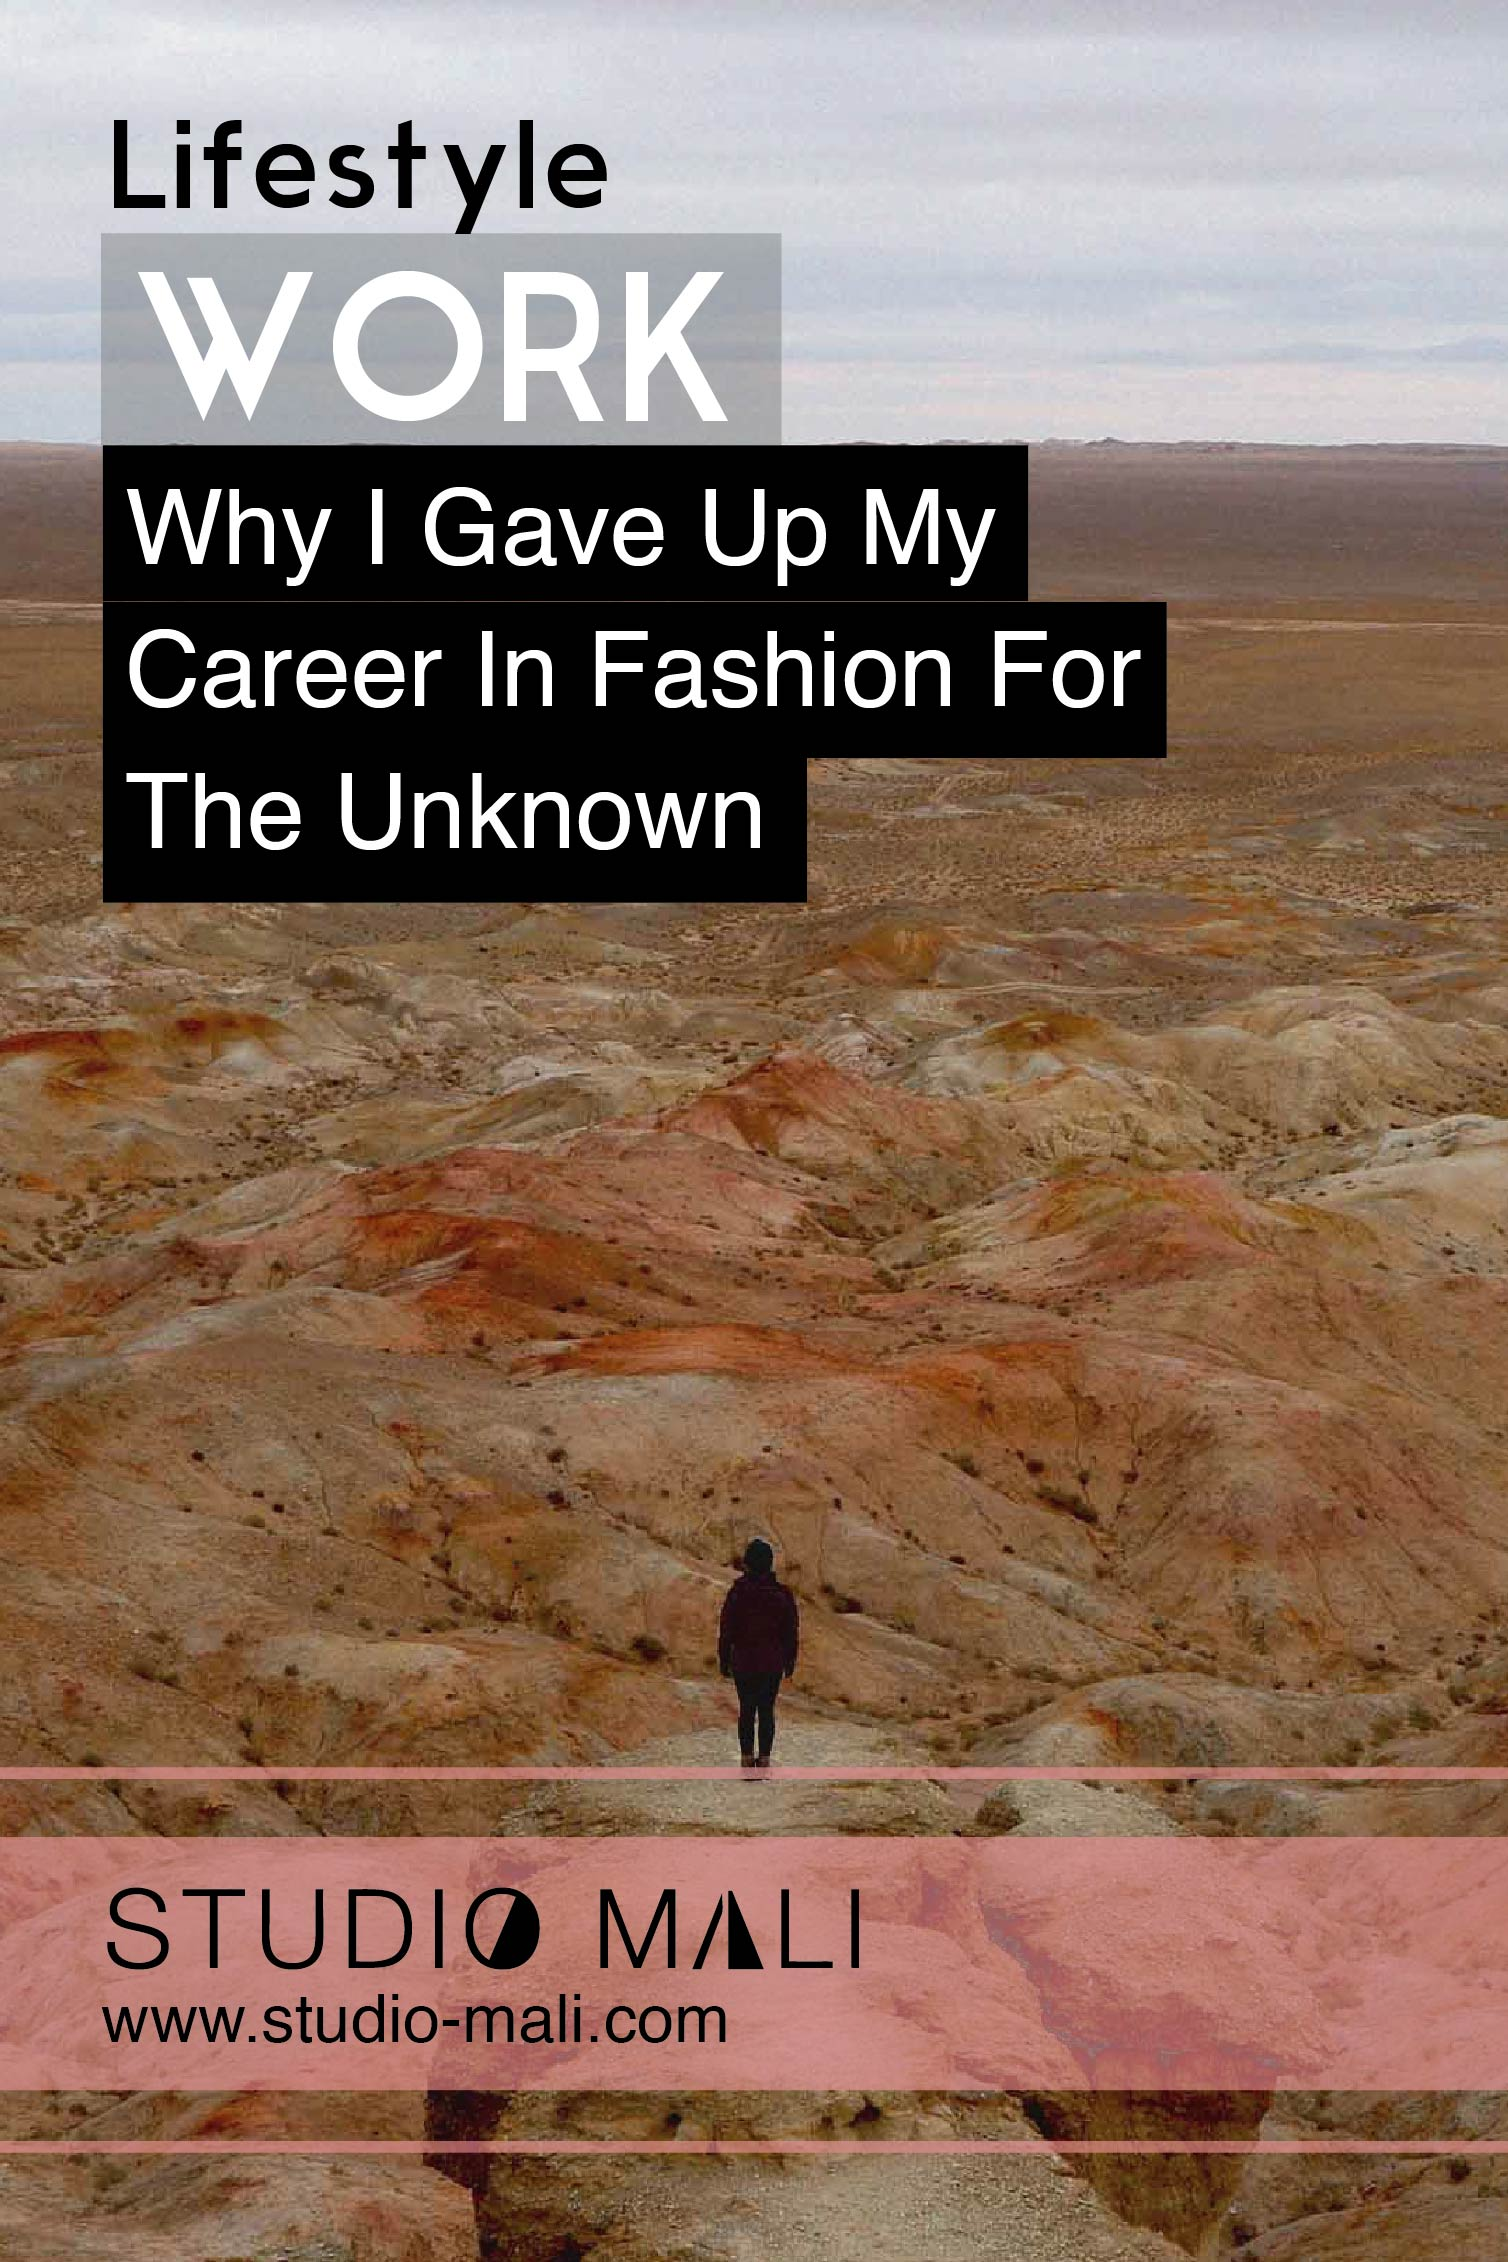 Lifestyle - Why I Gave Up My Career In Fashion For The Unknown, by Studio Mali